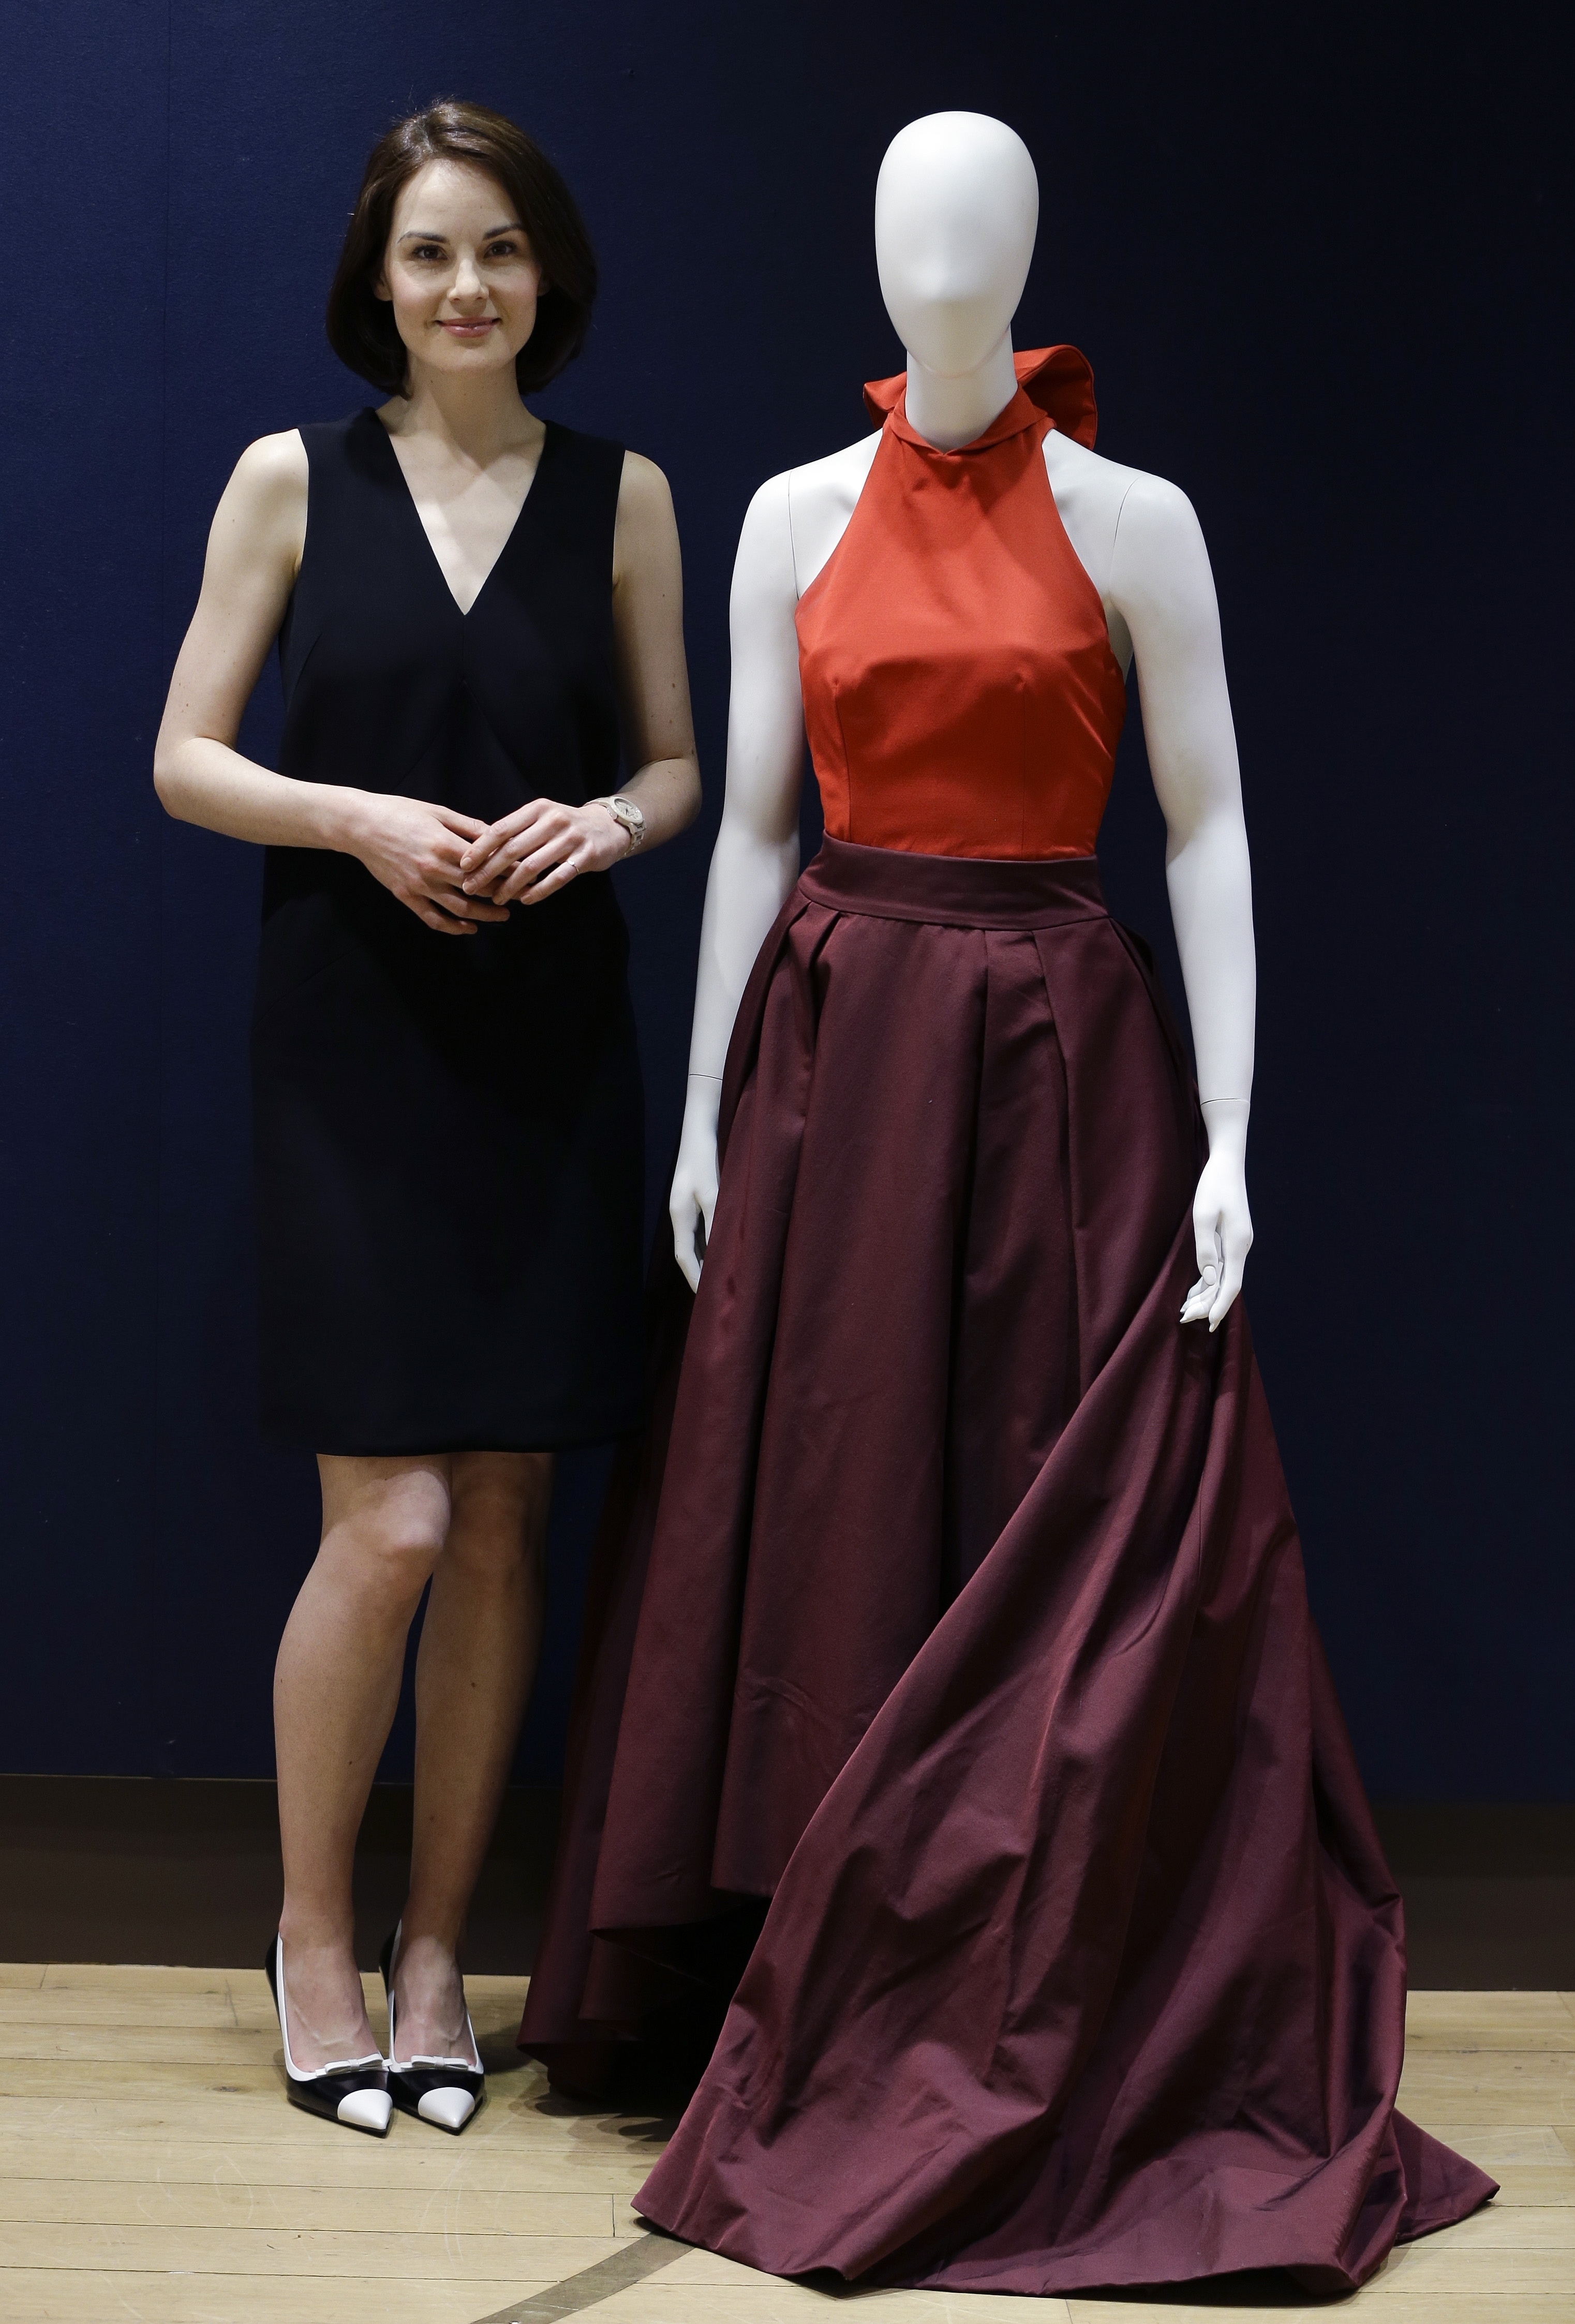 Michelle Dockery stands with the Prada gown she wore to the 2013 Emmy's, at Christie's auction rooms in London.